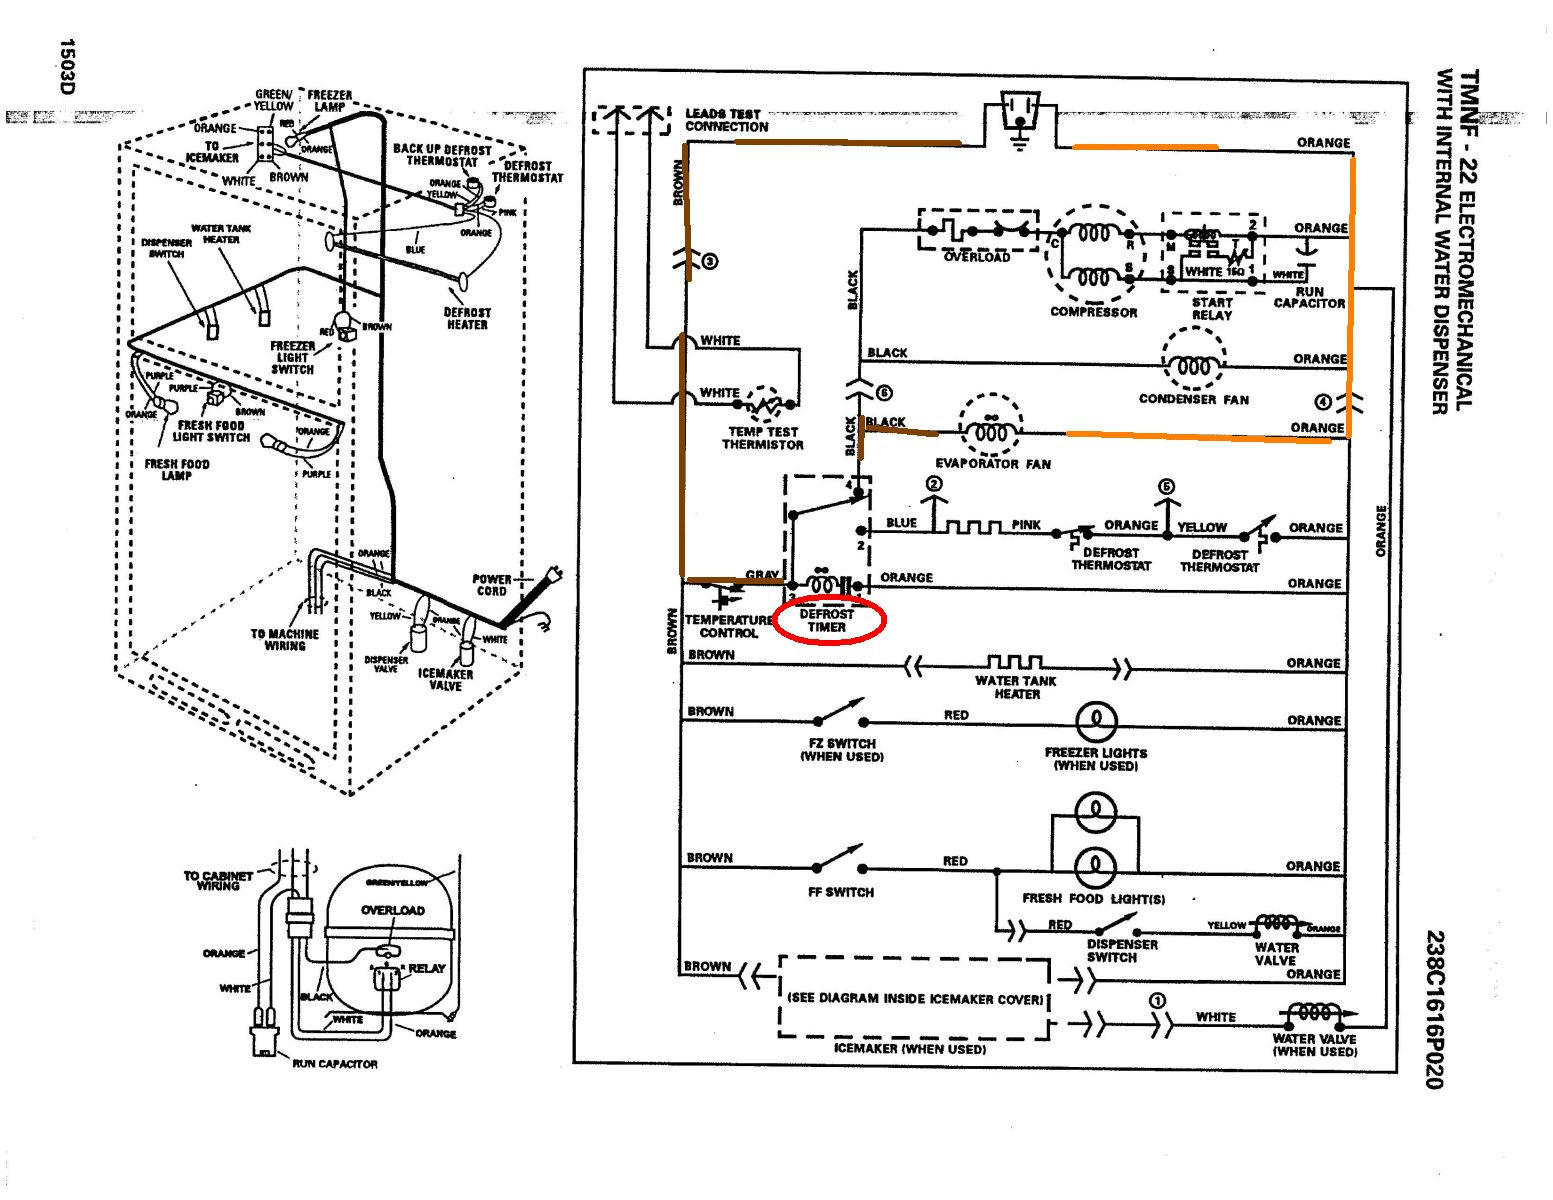 Frigidaire Dryer Wiring Diagram from wholefoodsonabudget.com